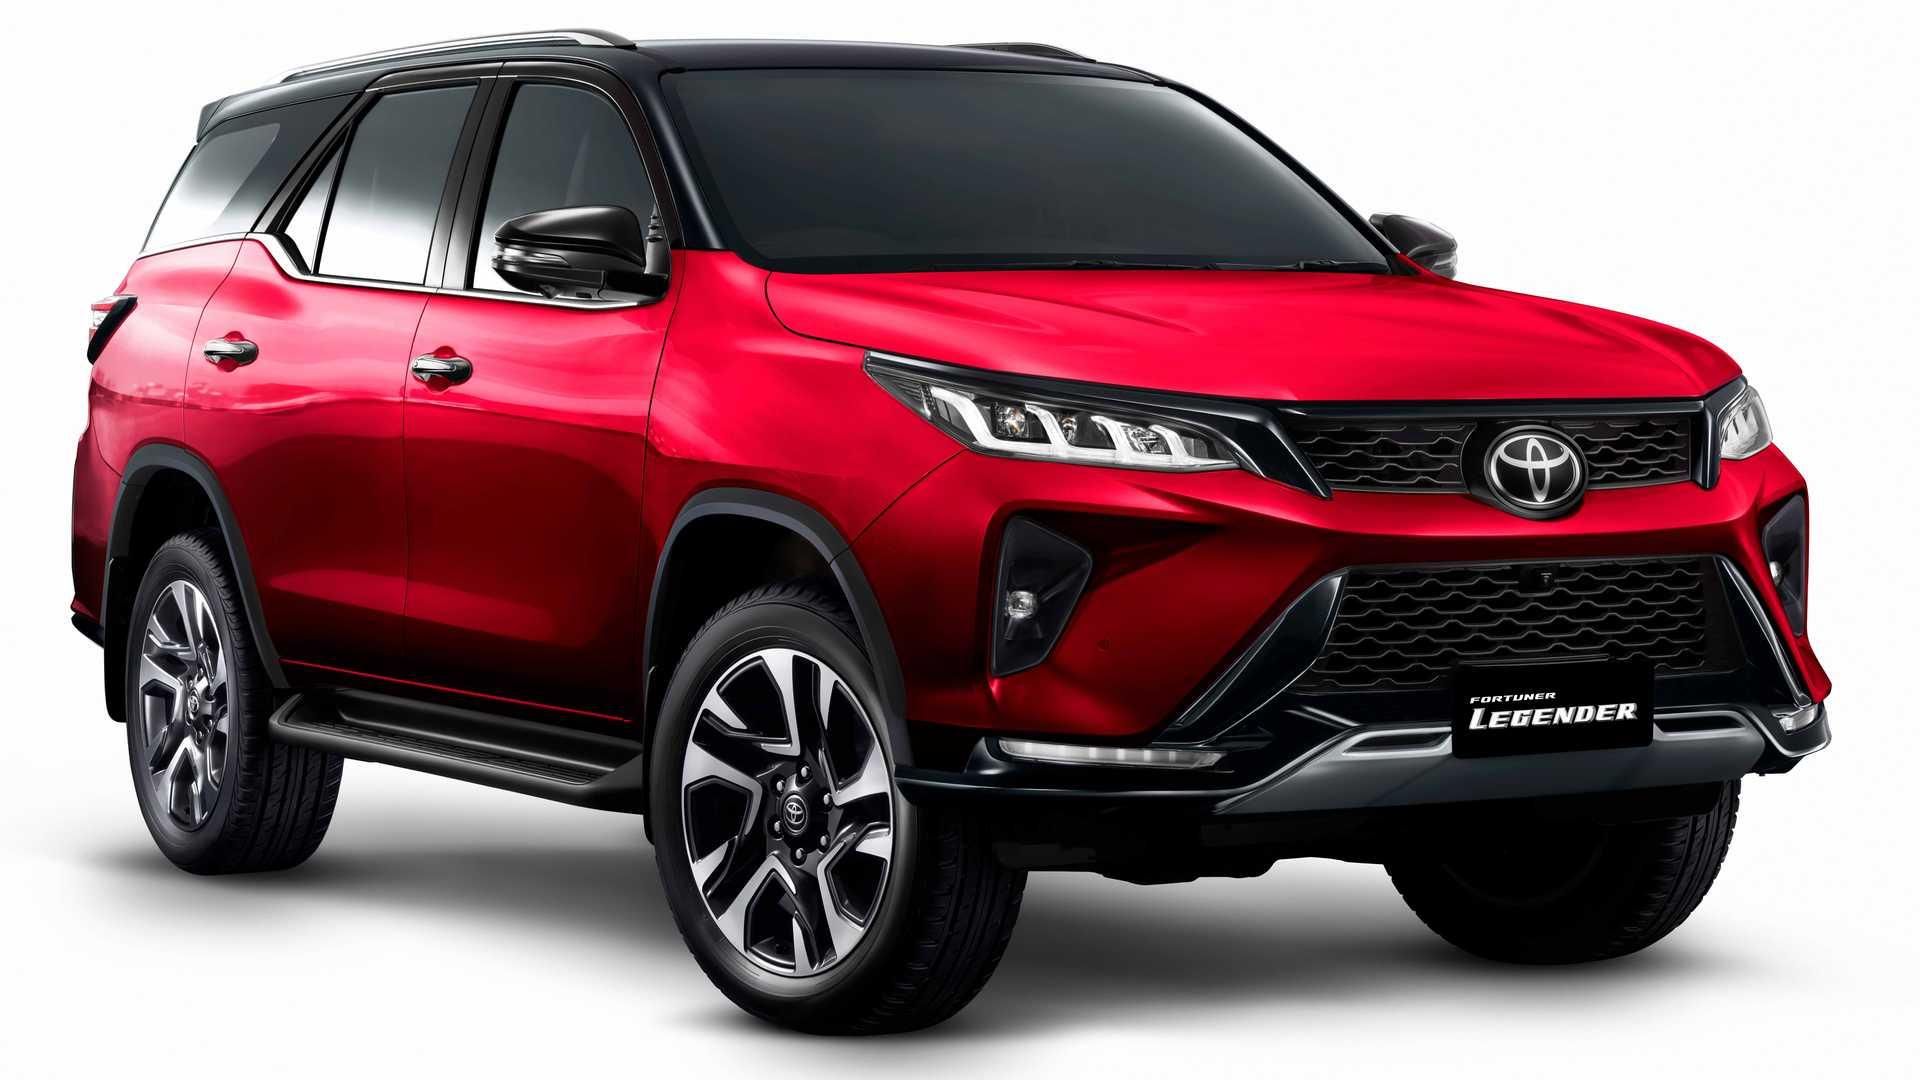 2021 Toyota Fortuner Revealed With More Power And Technology